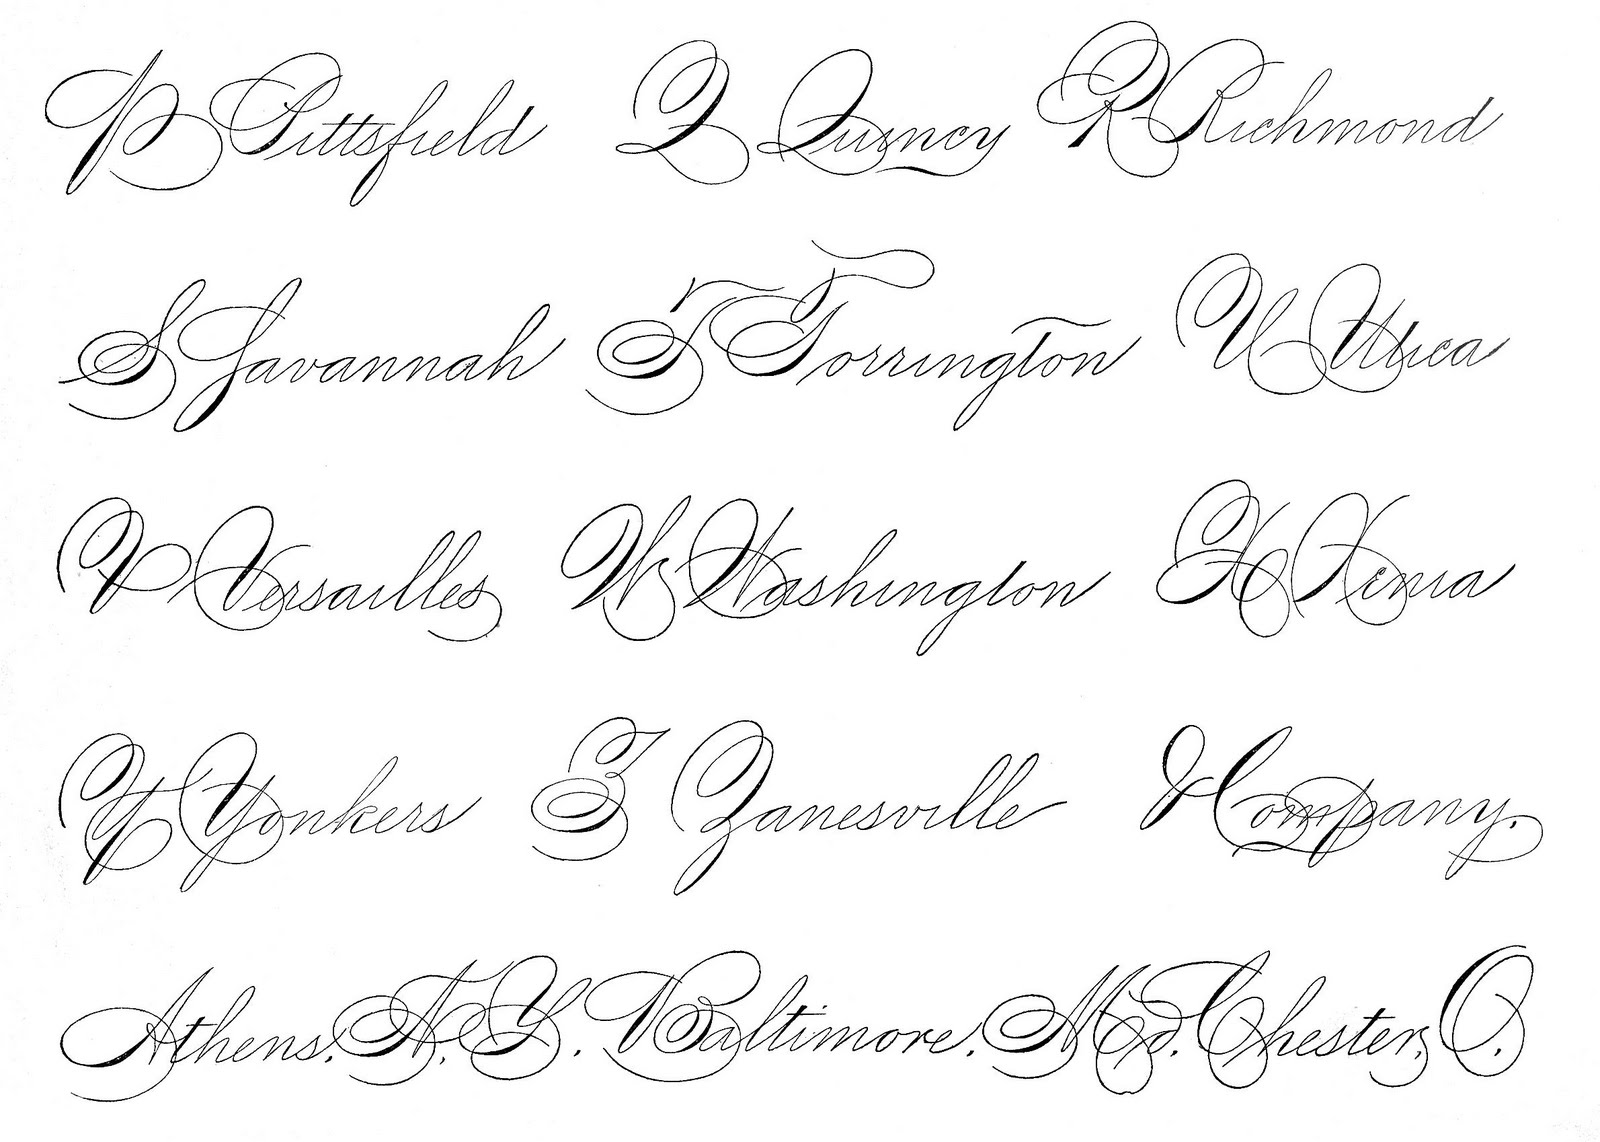 Spencerian Saturday - Pen Flourished Words - The Graphics Fairy